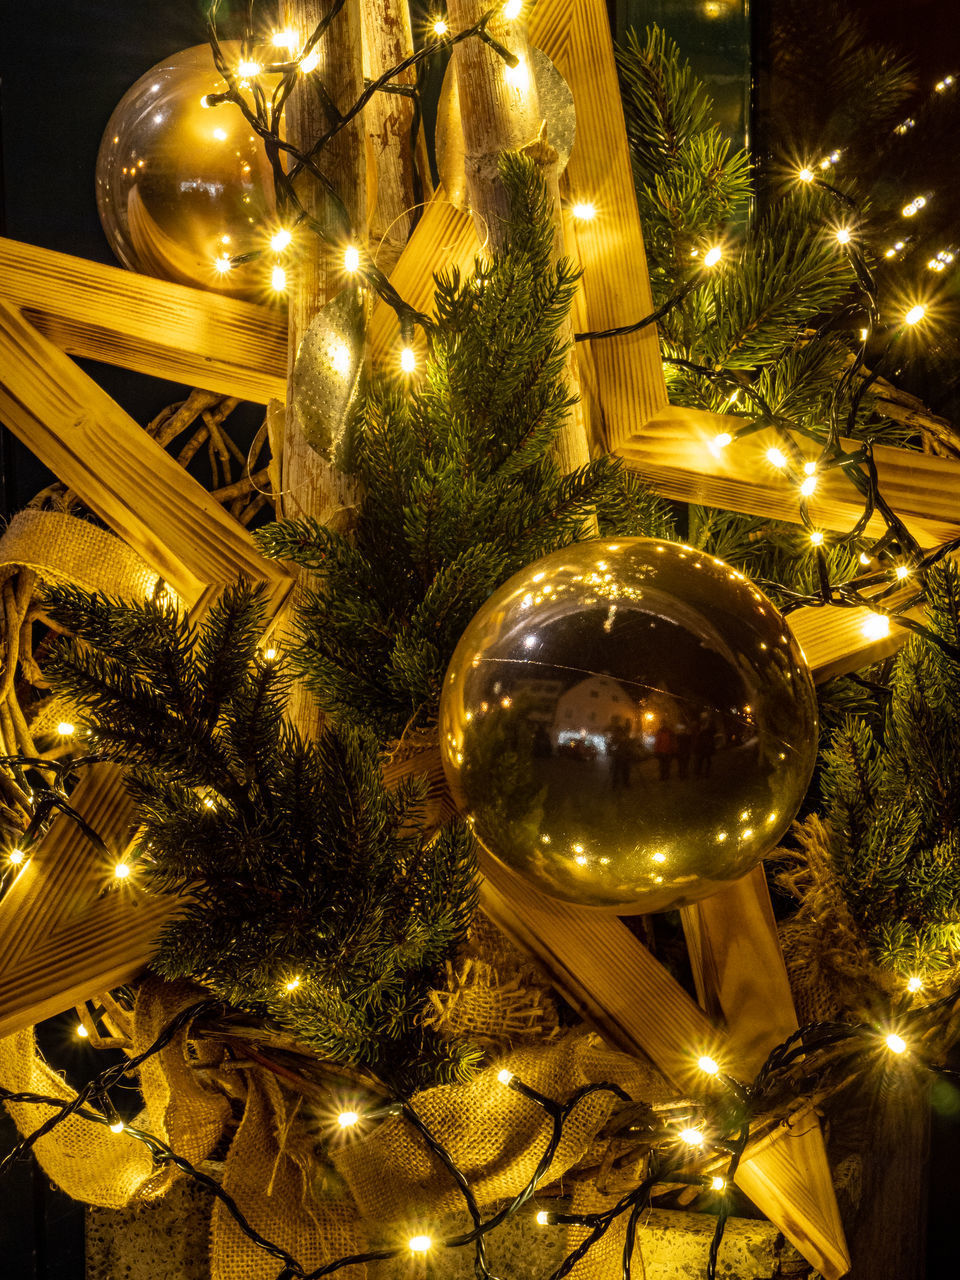 illuminated, tree, christmas, decoration, christmas decoration, celebration, holiday, christmas tree, christmas lights, lighting equipment, christmas ornament, night, no people, reflection, celebration event, plant, sphere, holiday - event, hanging, light